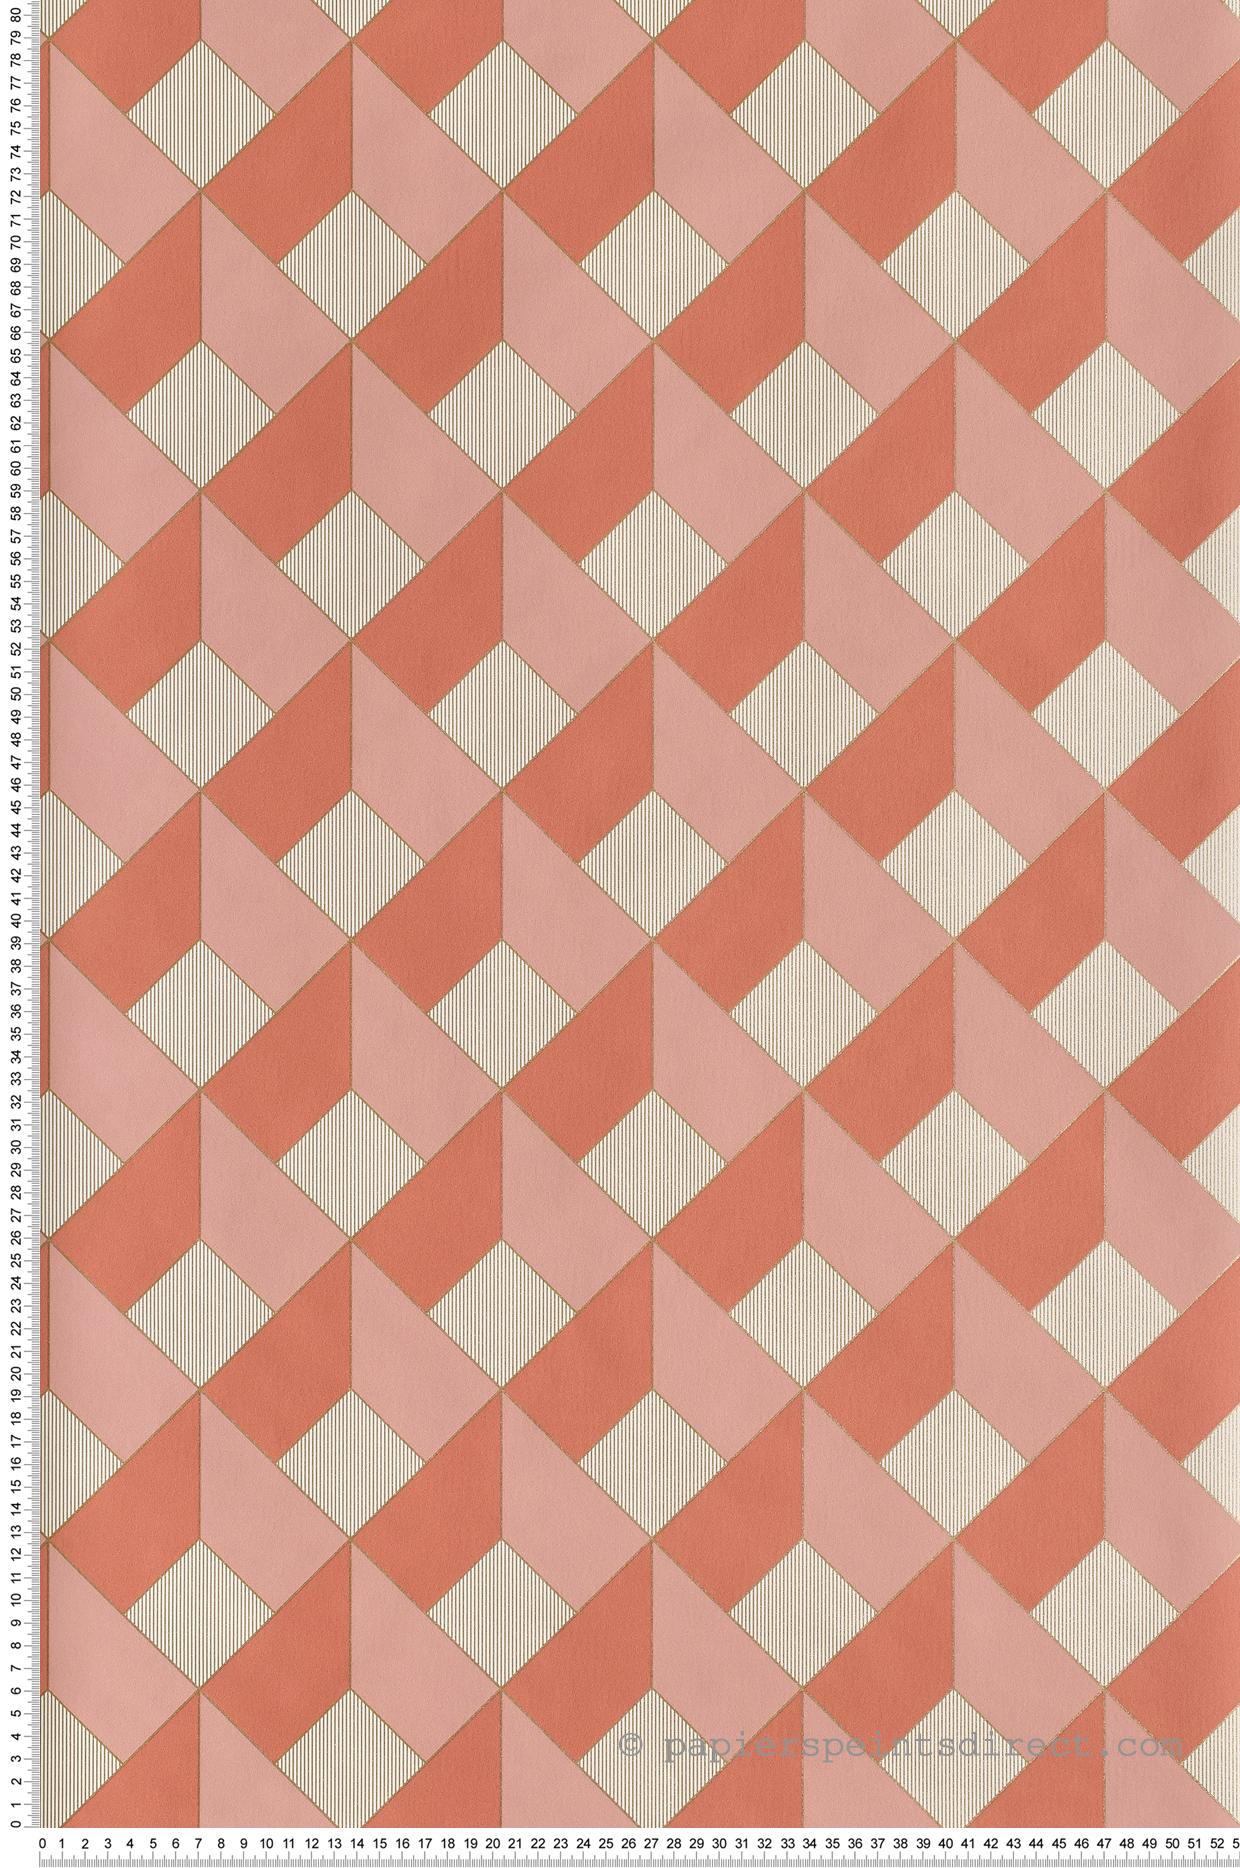 Papier peint Square rose marsala - Spaces de Casélio | Réf. SPA100124135